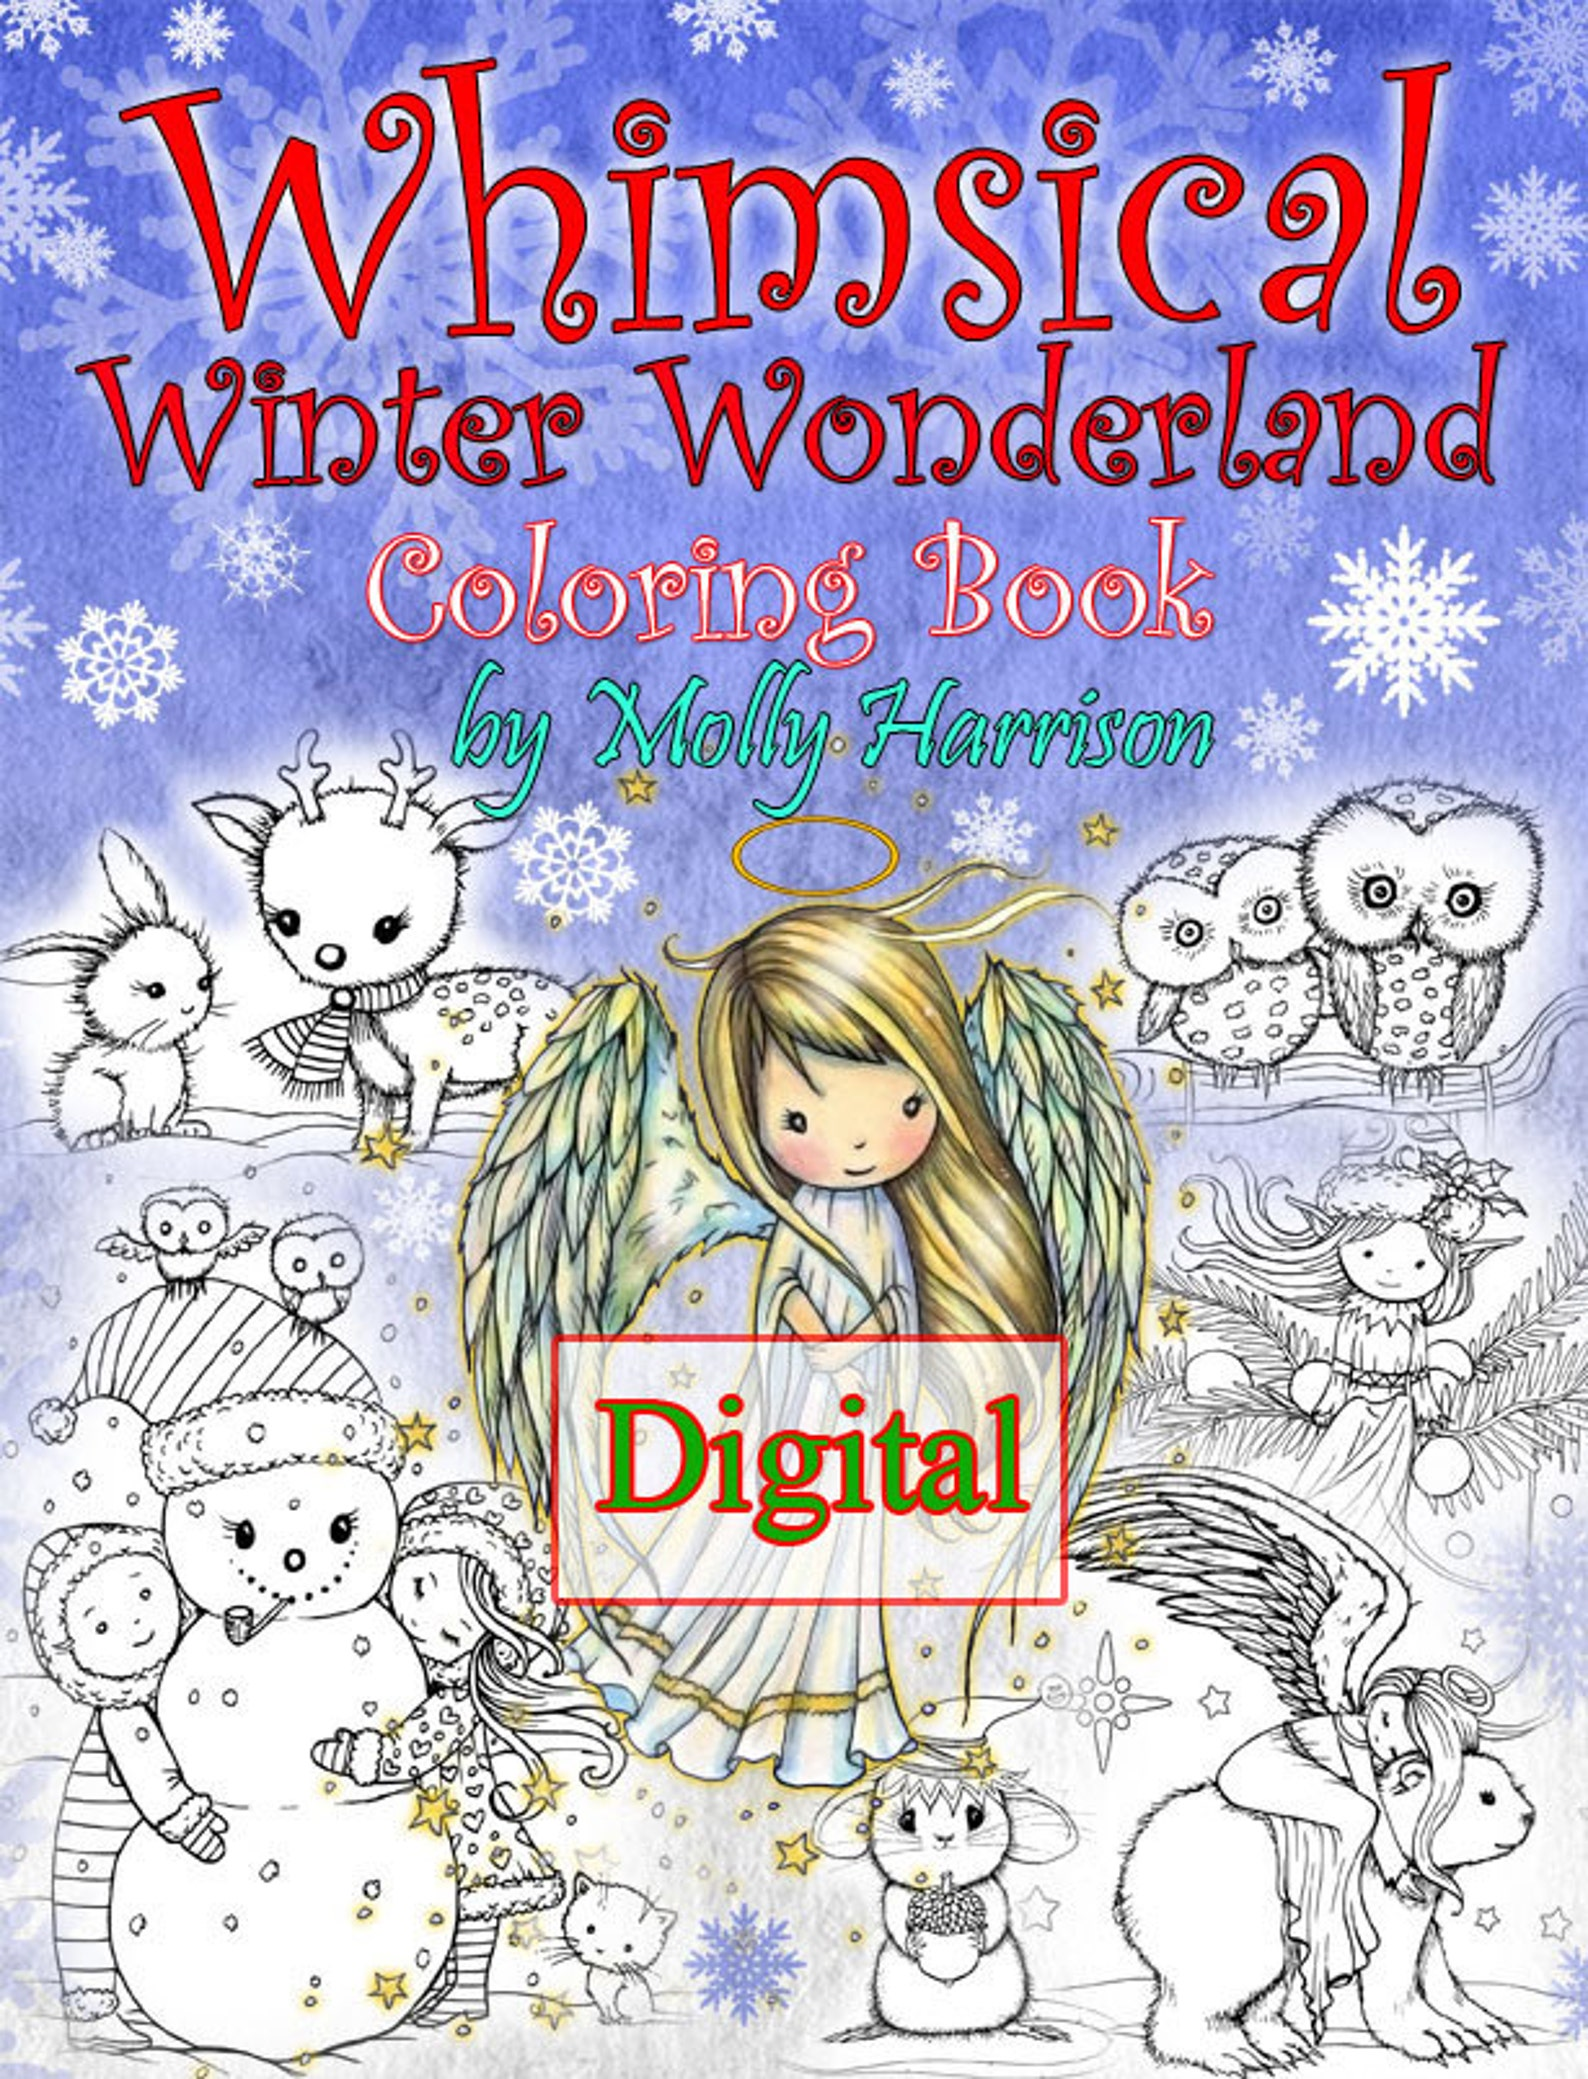 Whimsical Winter Wonderland Etsy Coloring Book by Molly Harrison